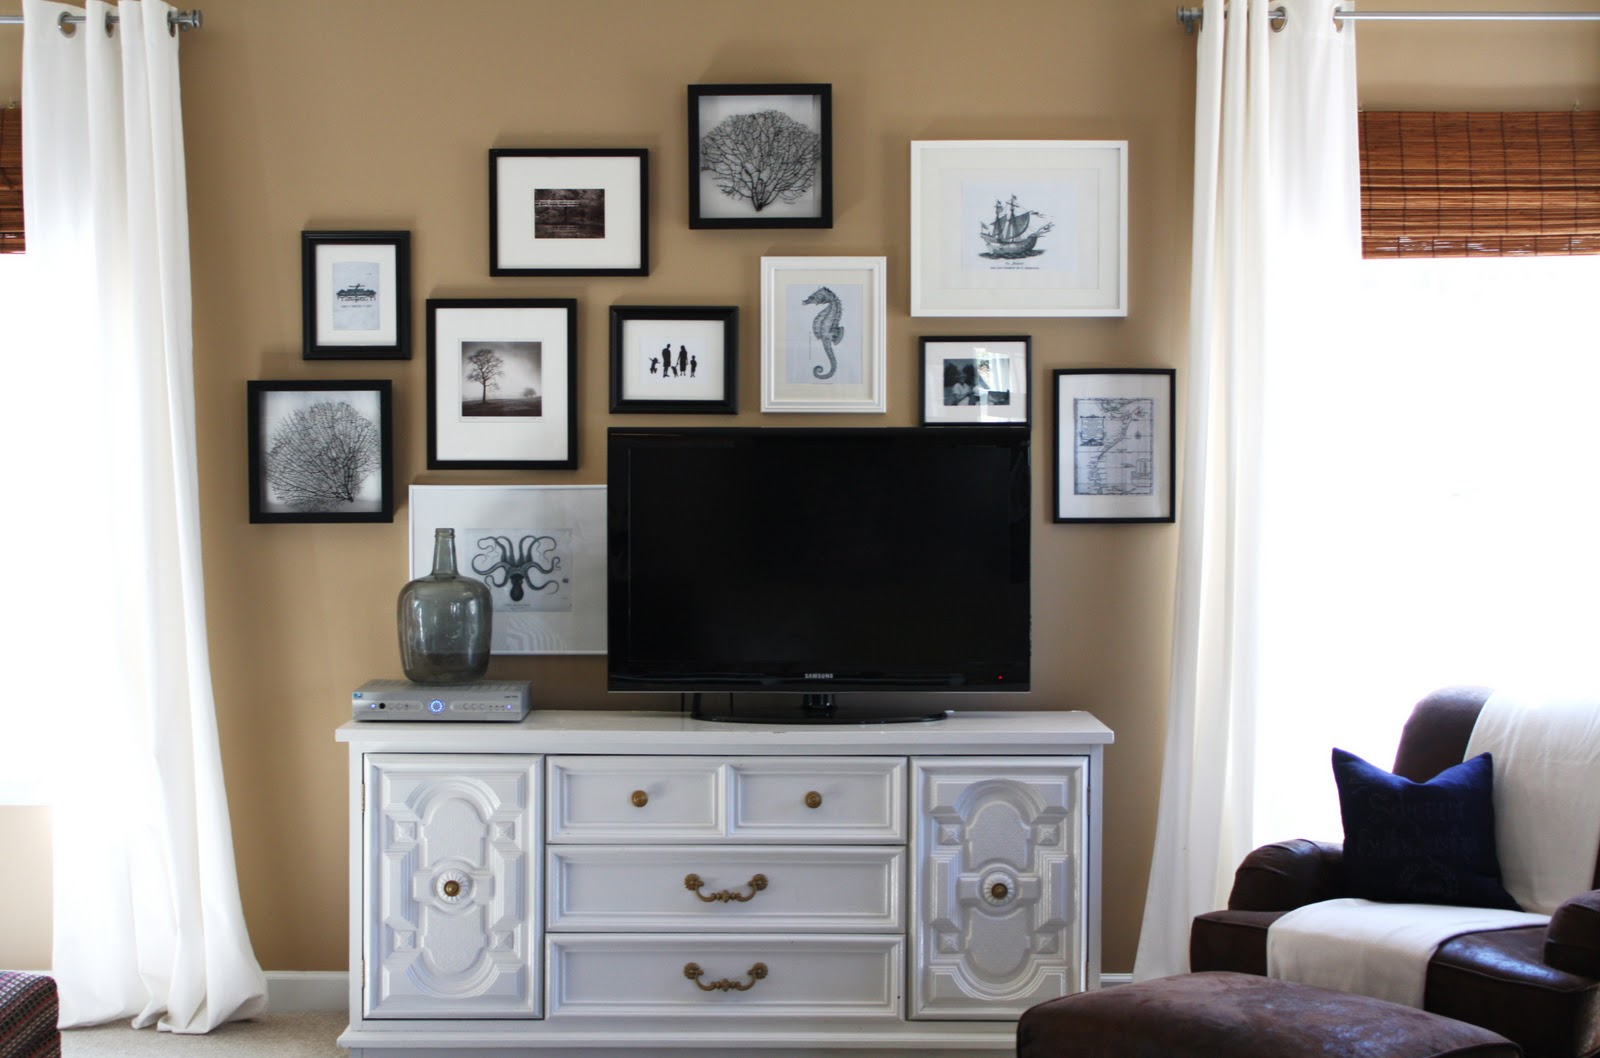 Hanging Art Above Tv Lisa Mende Design How To Decorate Around A Flat Screen Tv